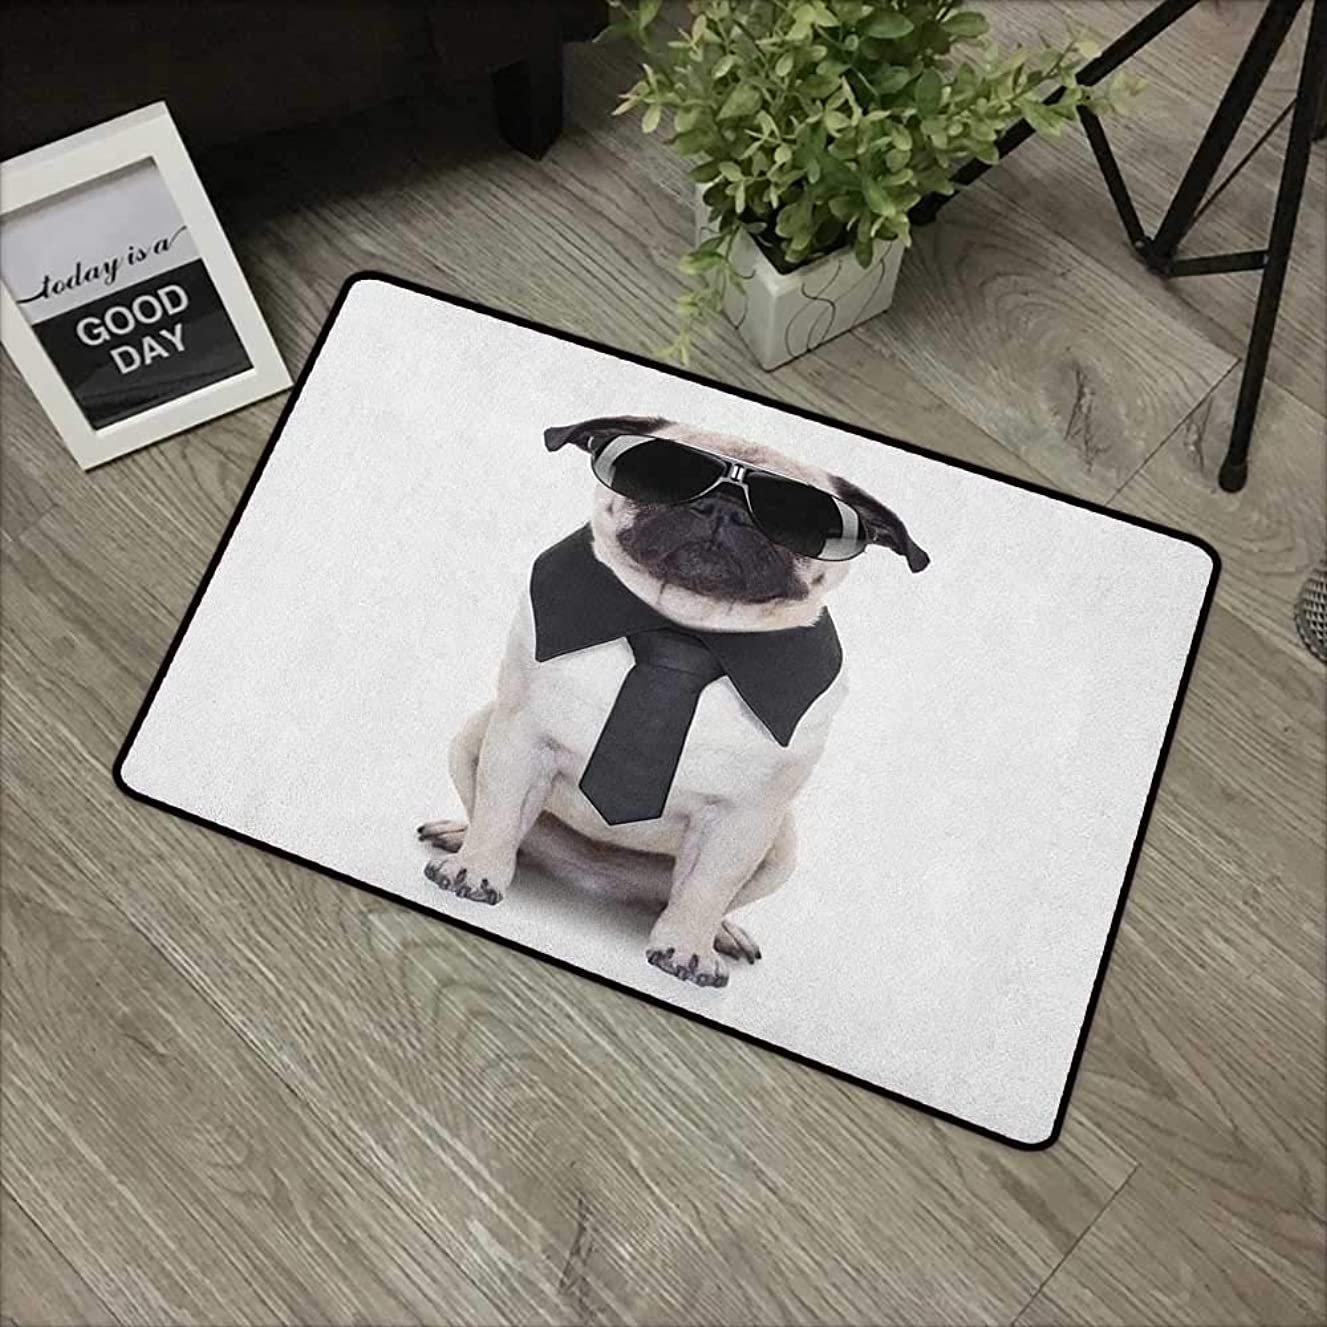 Bathroom Anti-Slip Door mat W35 x L47 INCH Pug,Cool Looking Dog Tie and Big Fancy Black Sunglasses Funny Canine Animal Comedy Image, Black Cream Easy to Clean, Easy to fold,Non-Slip Door Mat Carpet